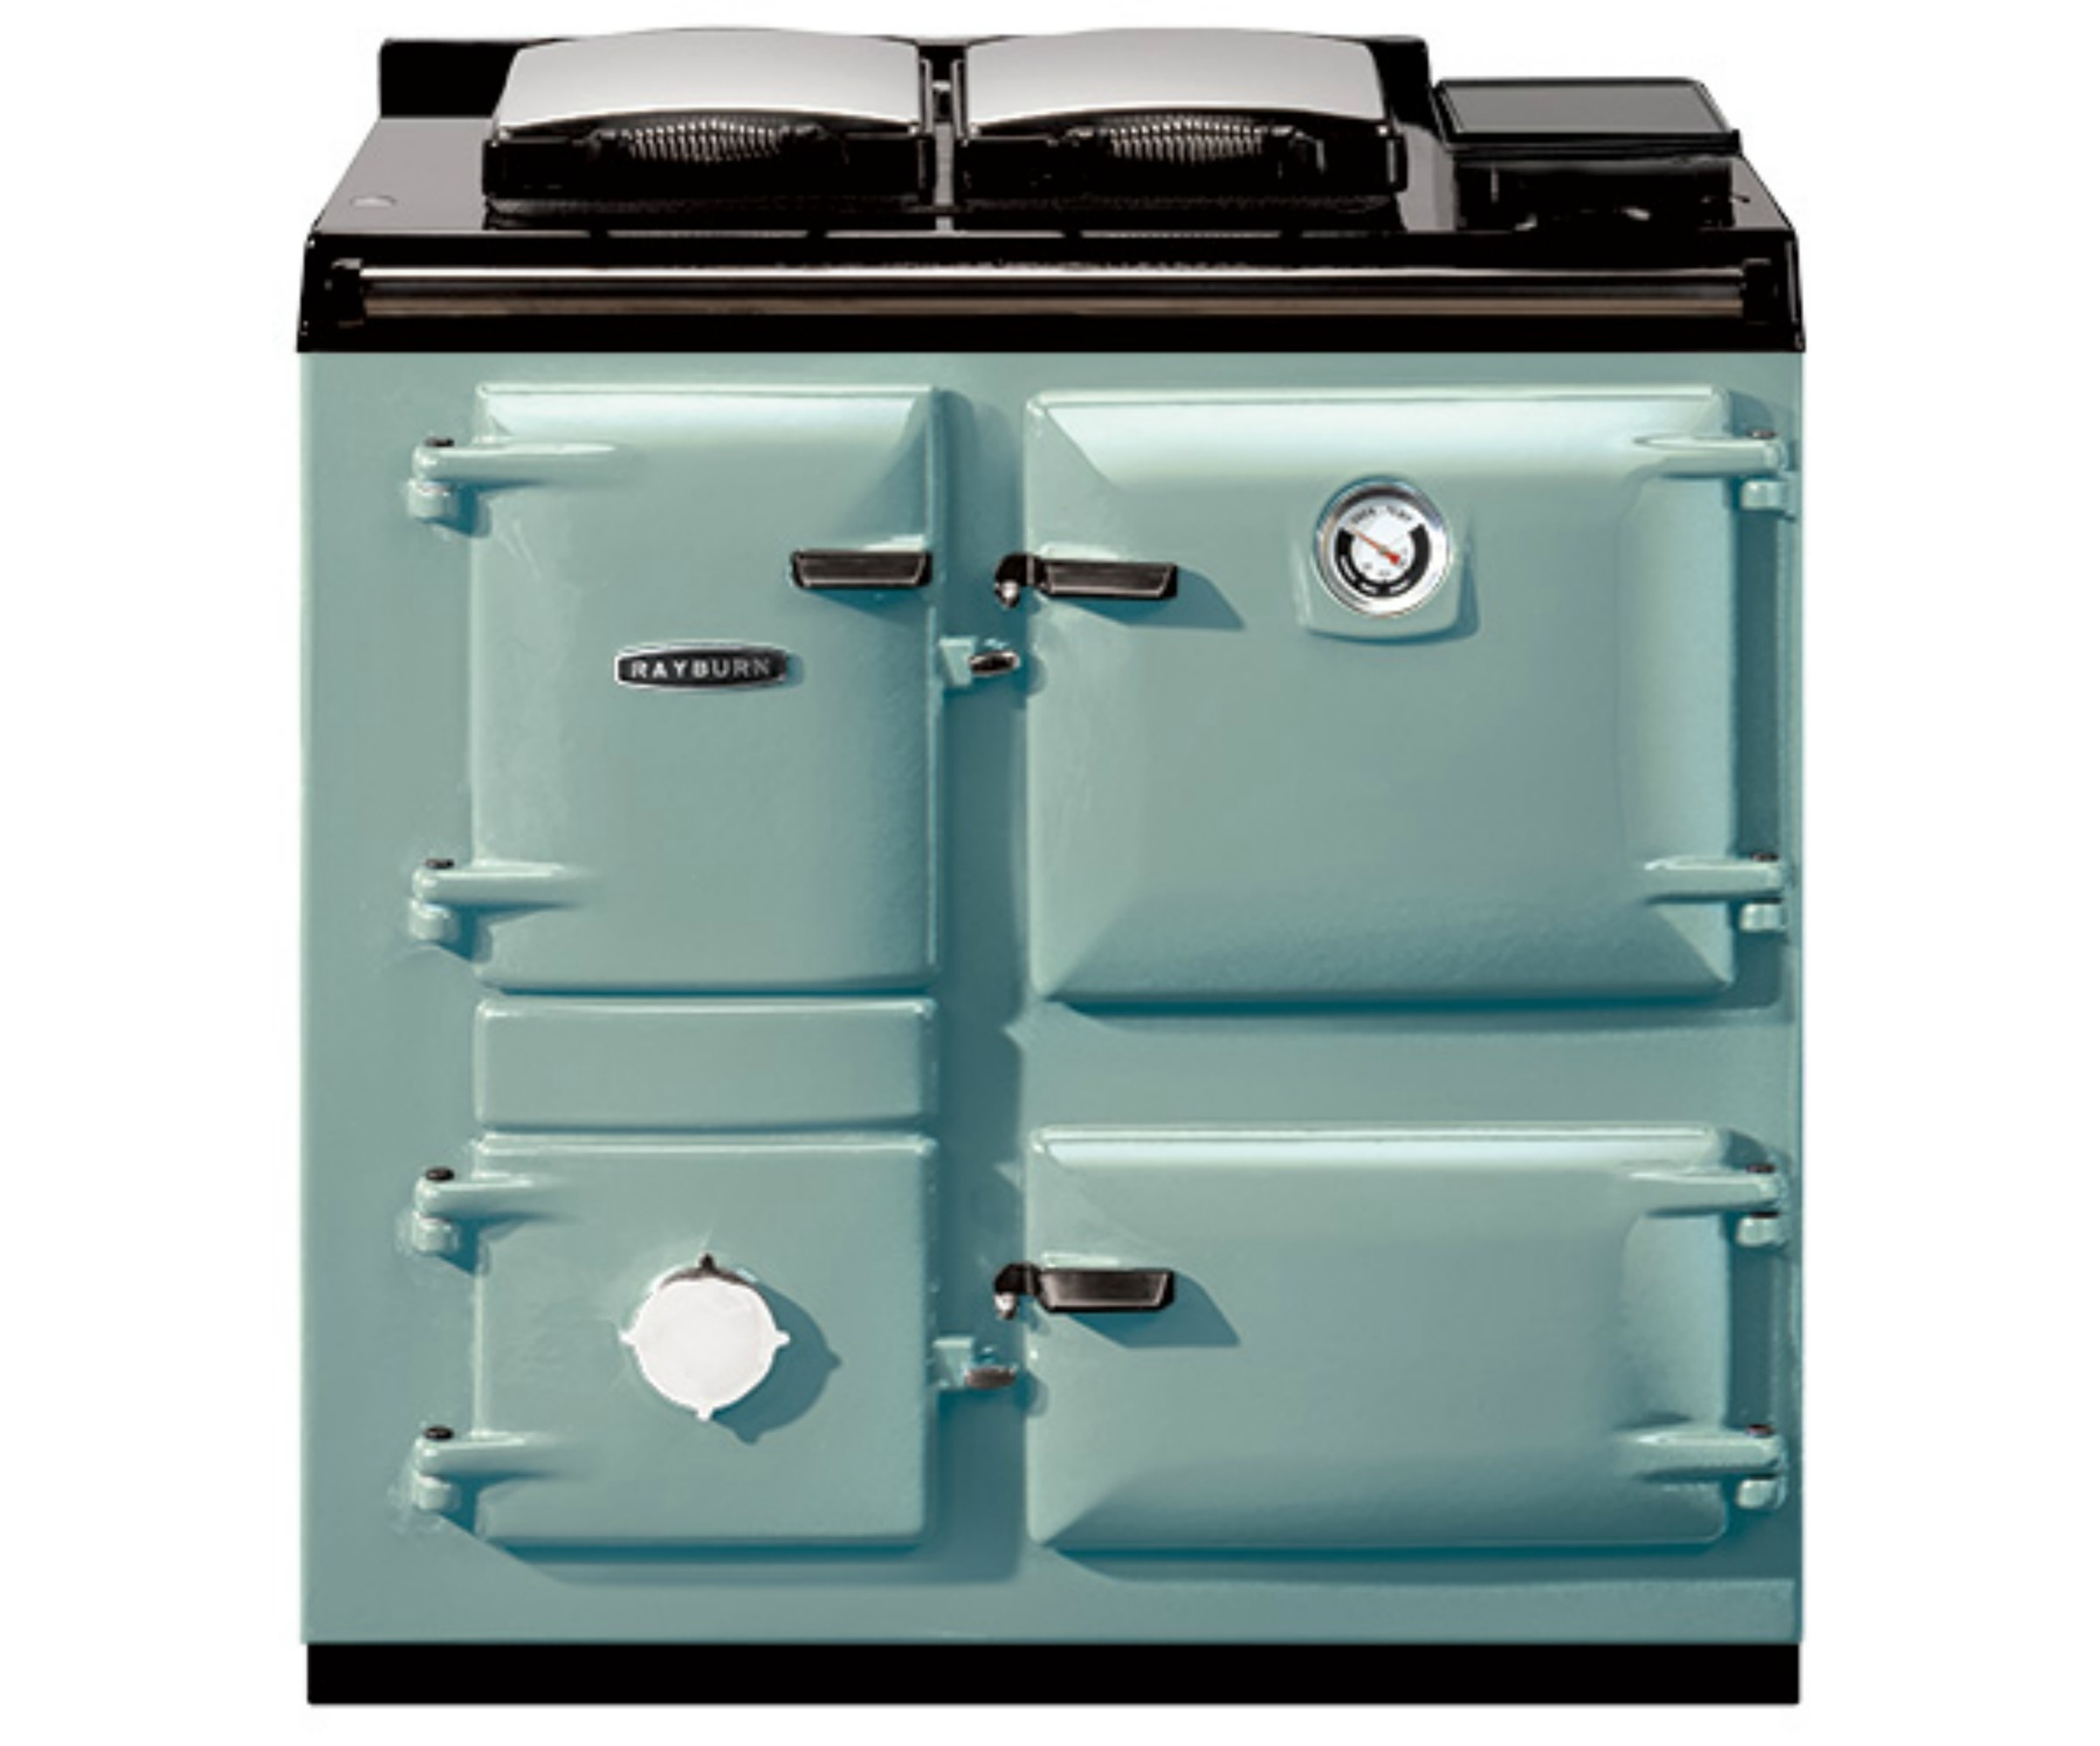 rayburn 355sfw cuisini re multicombustible bois stove sellers. Black Bedroom Furniture Sets. Home Design Ideas